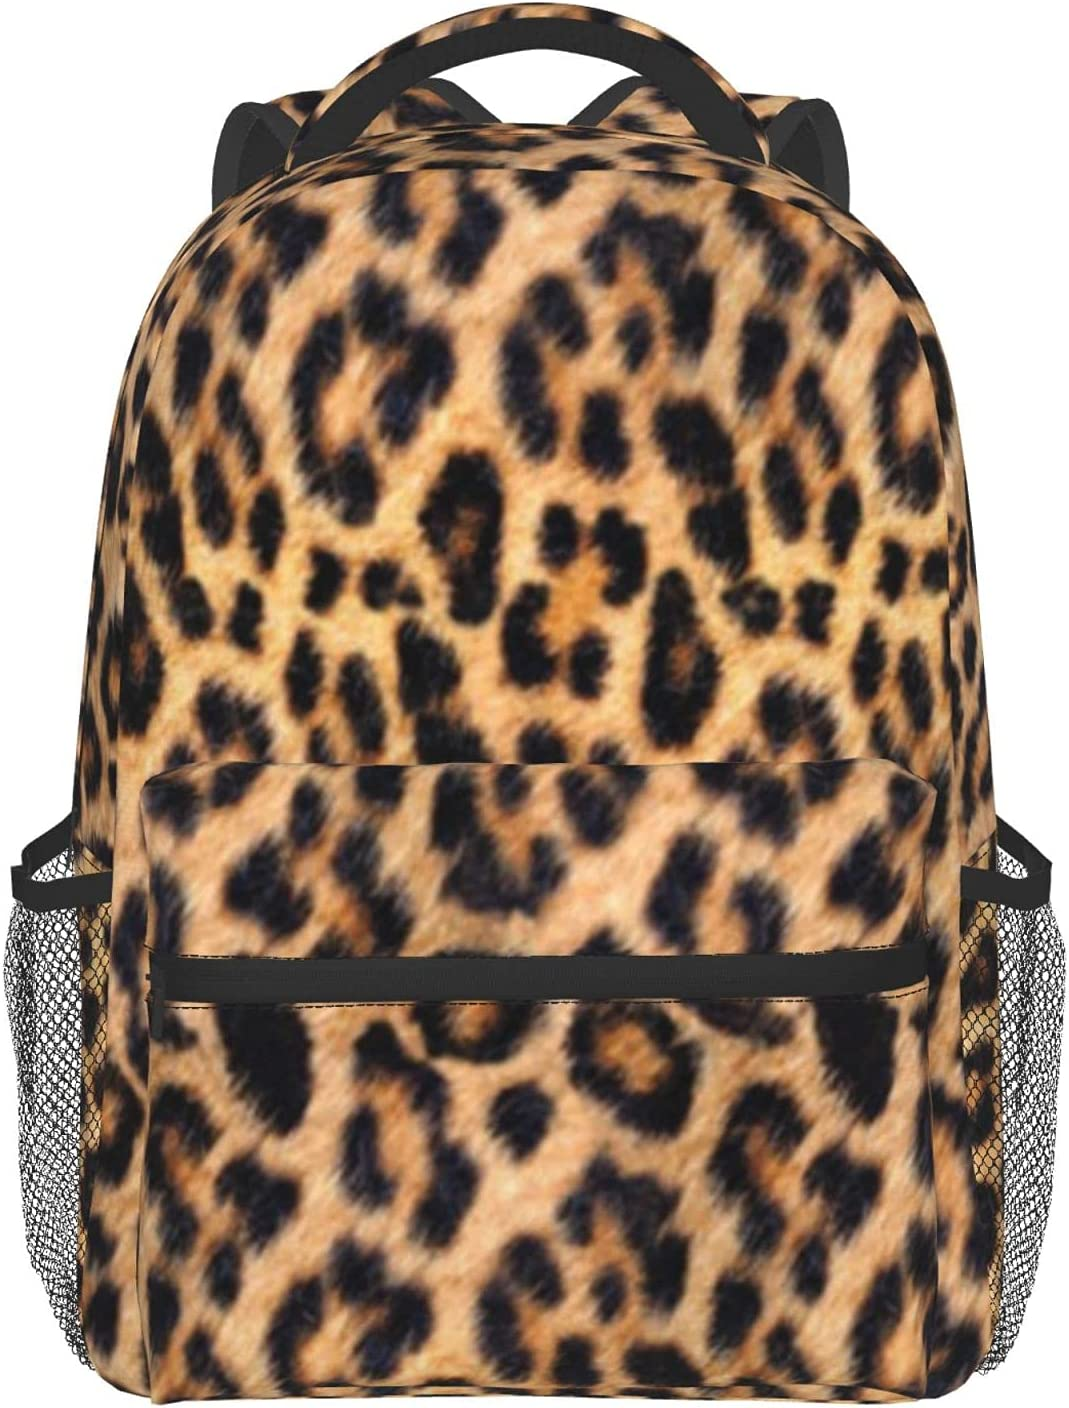 2021new shipping free CURANI Max 71% OFF Casual Backpack Leopard Print School 1 Laptop Bag Tra